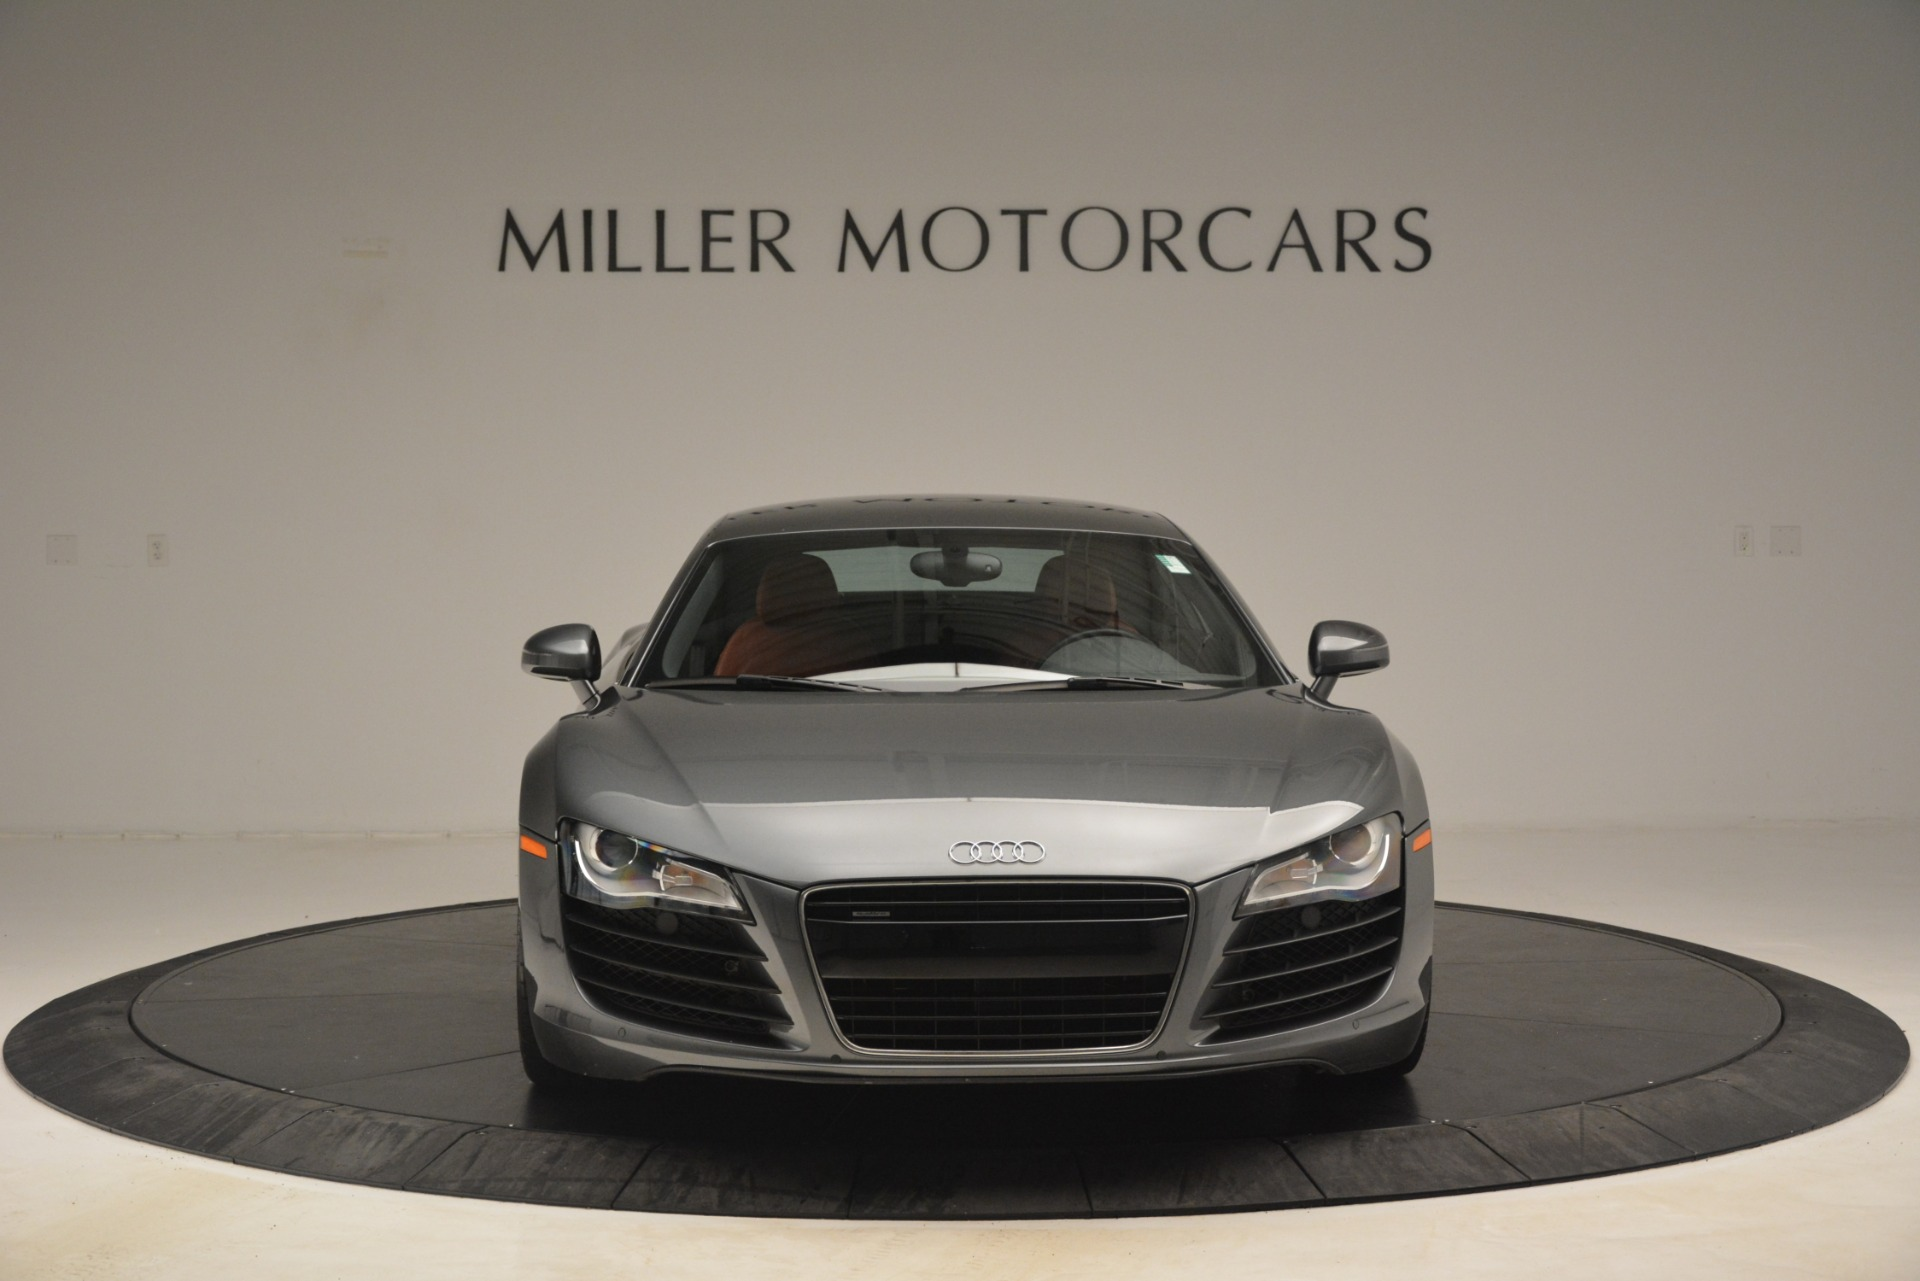 Used 2009 Audi R8 quattro For Sale In Greenwich, CT 3228_p7